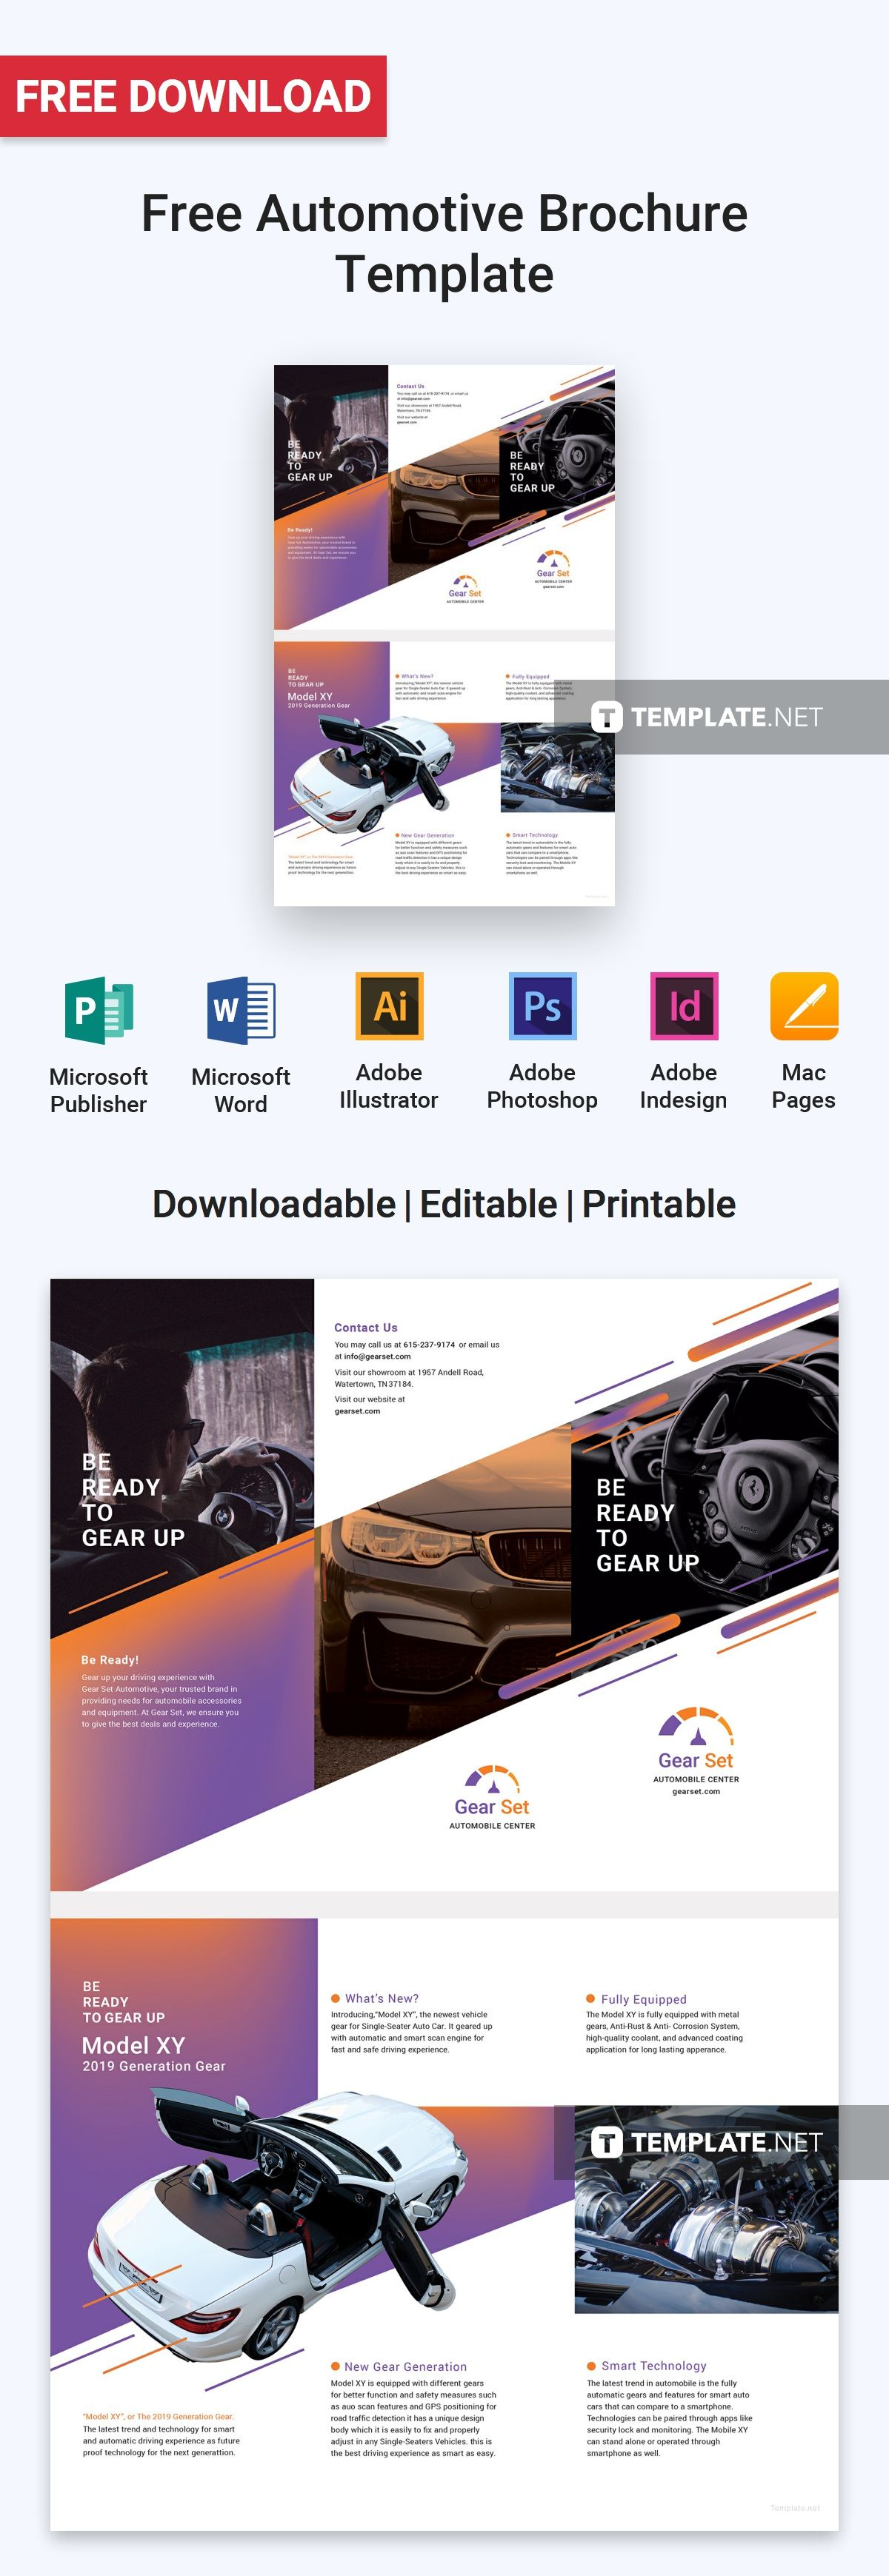 Microsoft Brochure Templates Free Download Mesmerizing Free Automotive Brochure  Pinterest  Brochure Template Brochures .